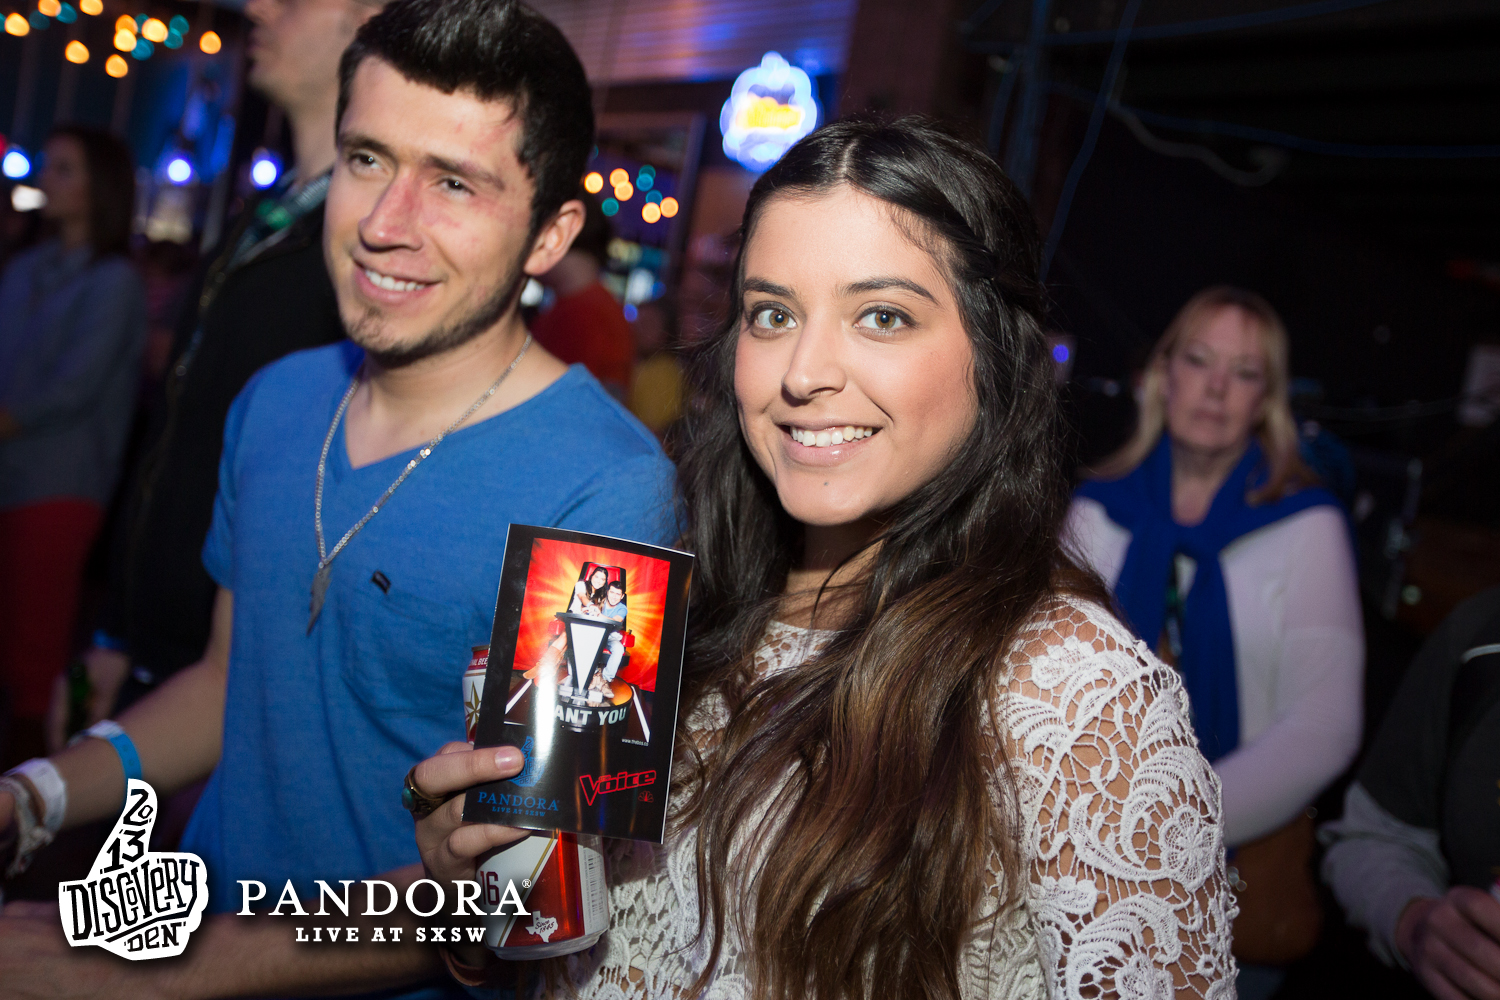 Pandora Discovery Den at Antones on March 12, 2013